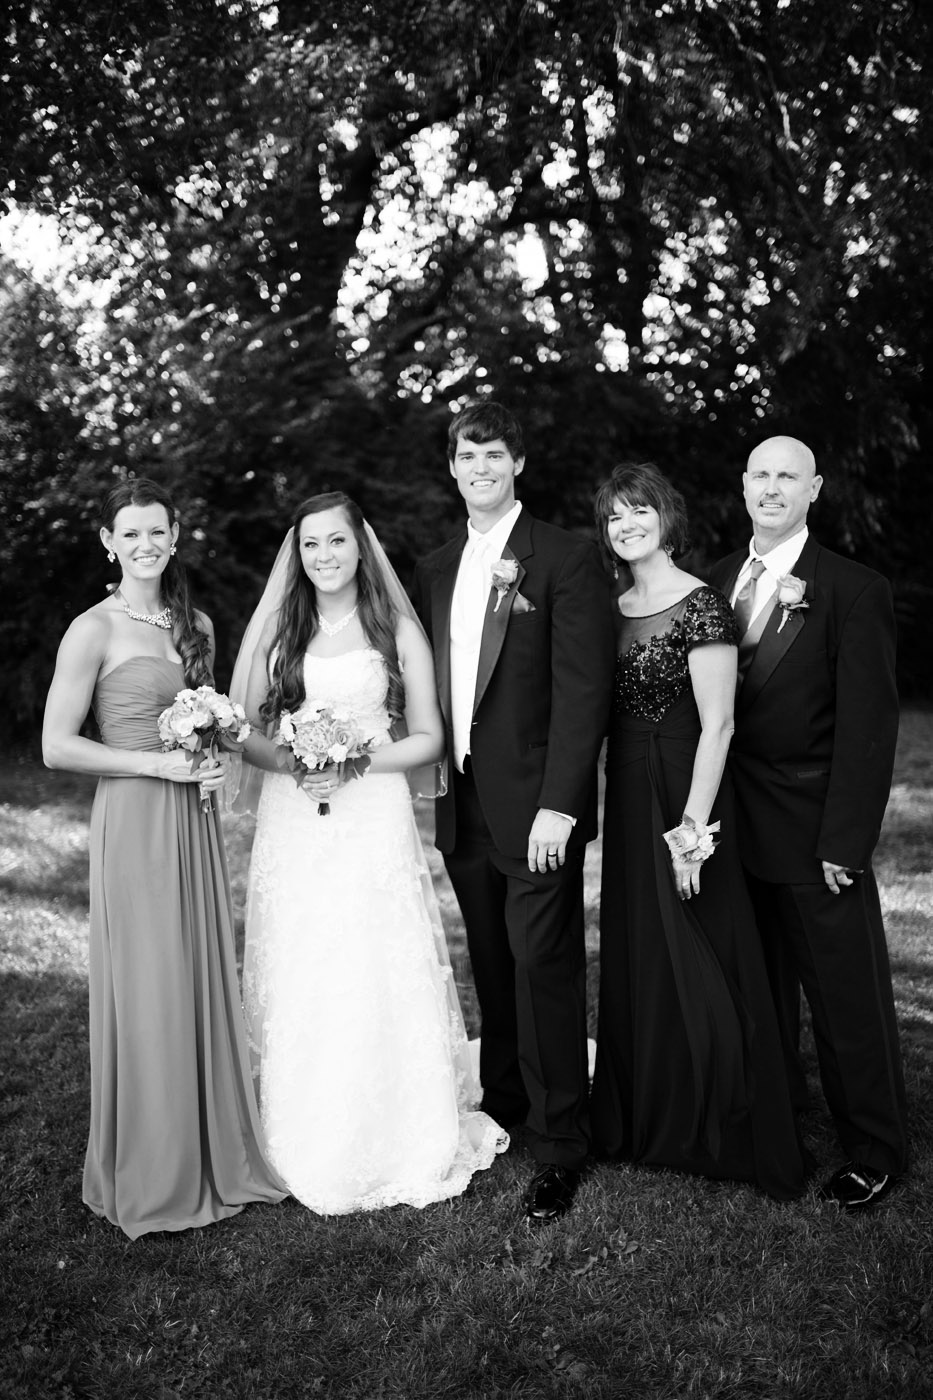 Sinclair Wedding 1 1378_1.jpg